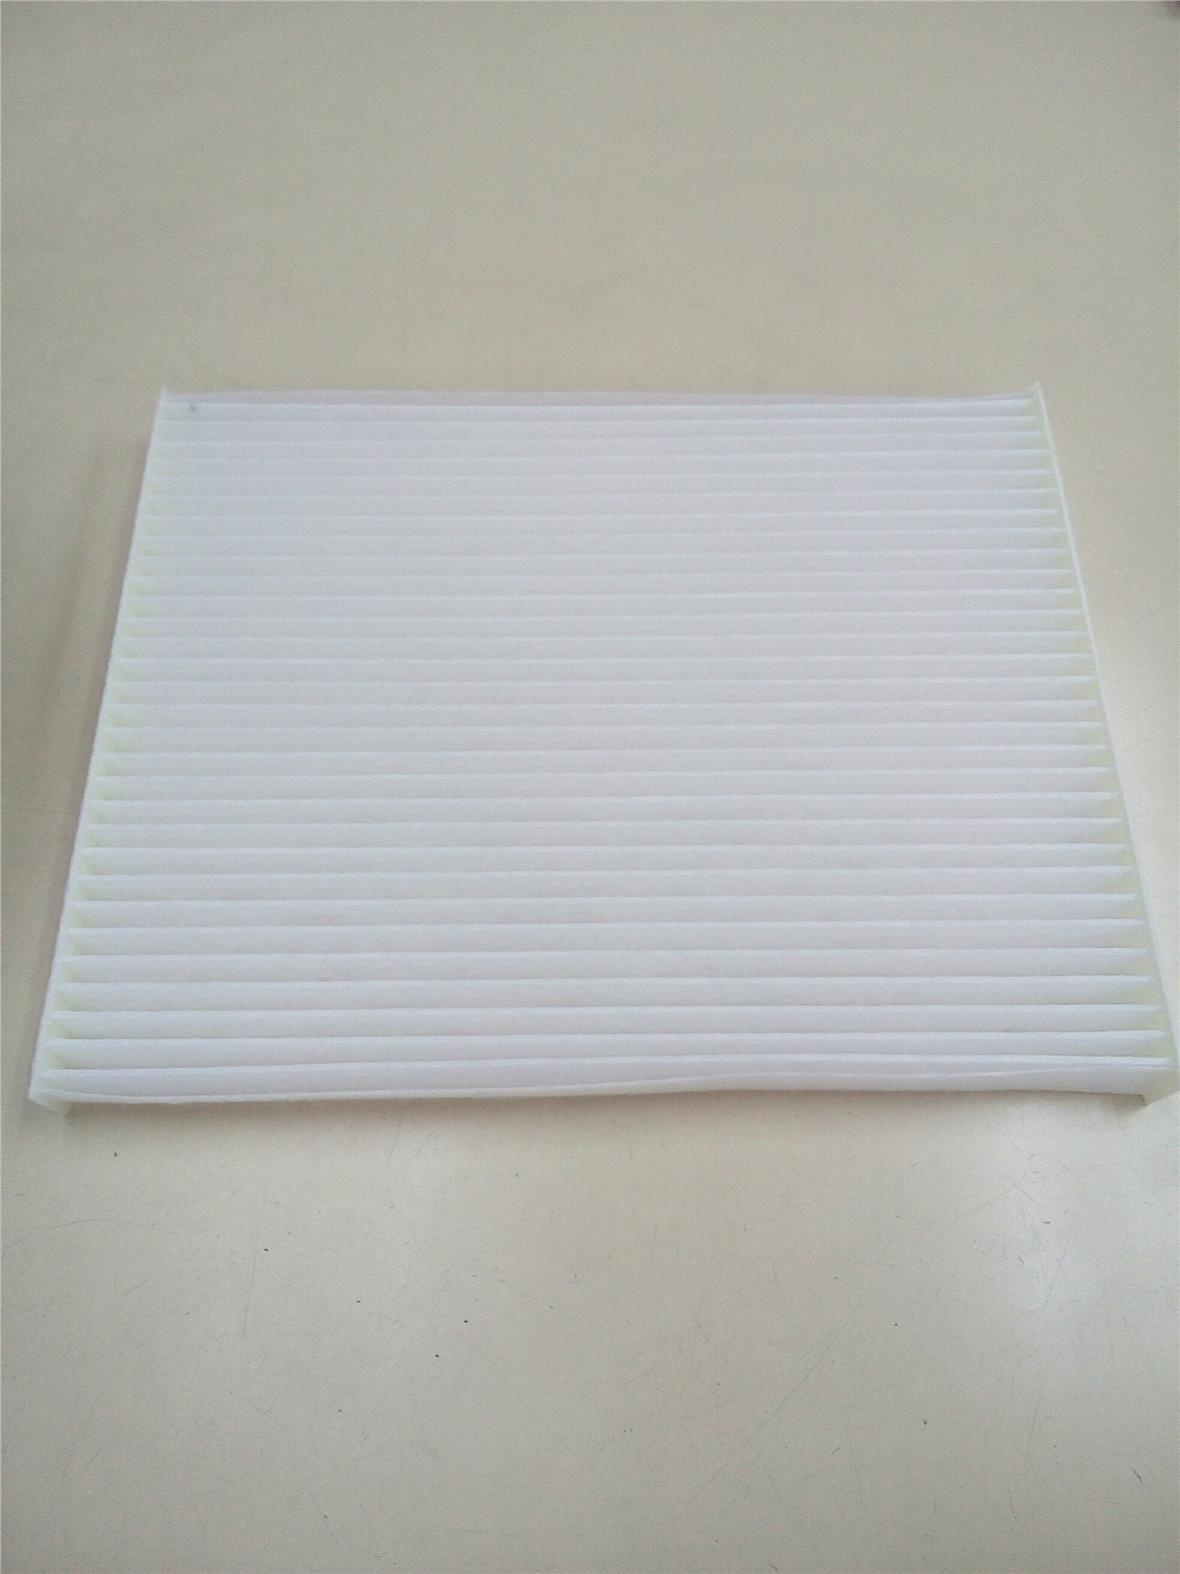 Hyundai Elantra 2012/MD Cabin Blower Air Filter-HCC